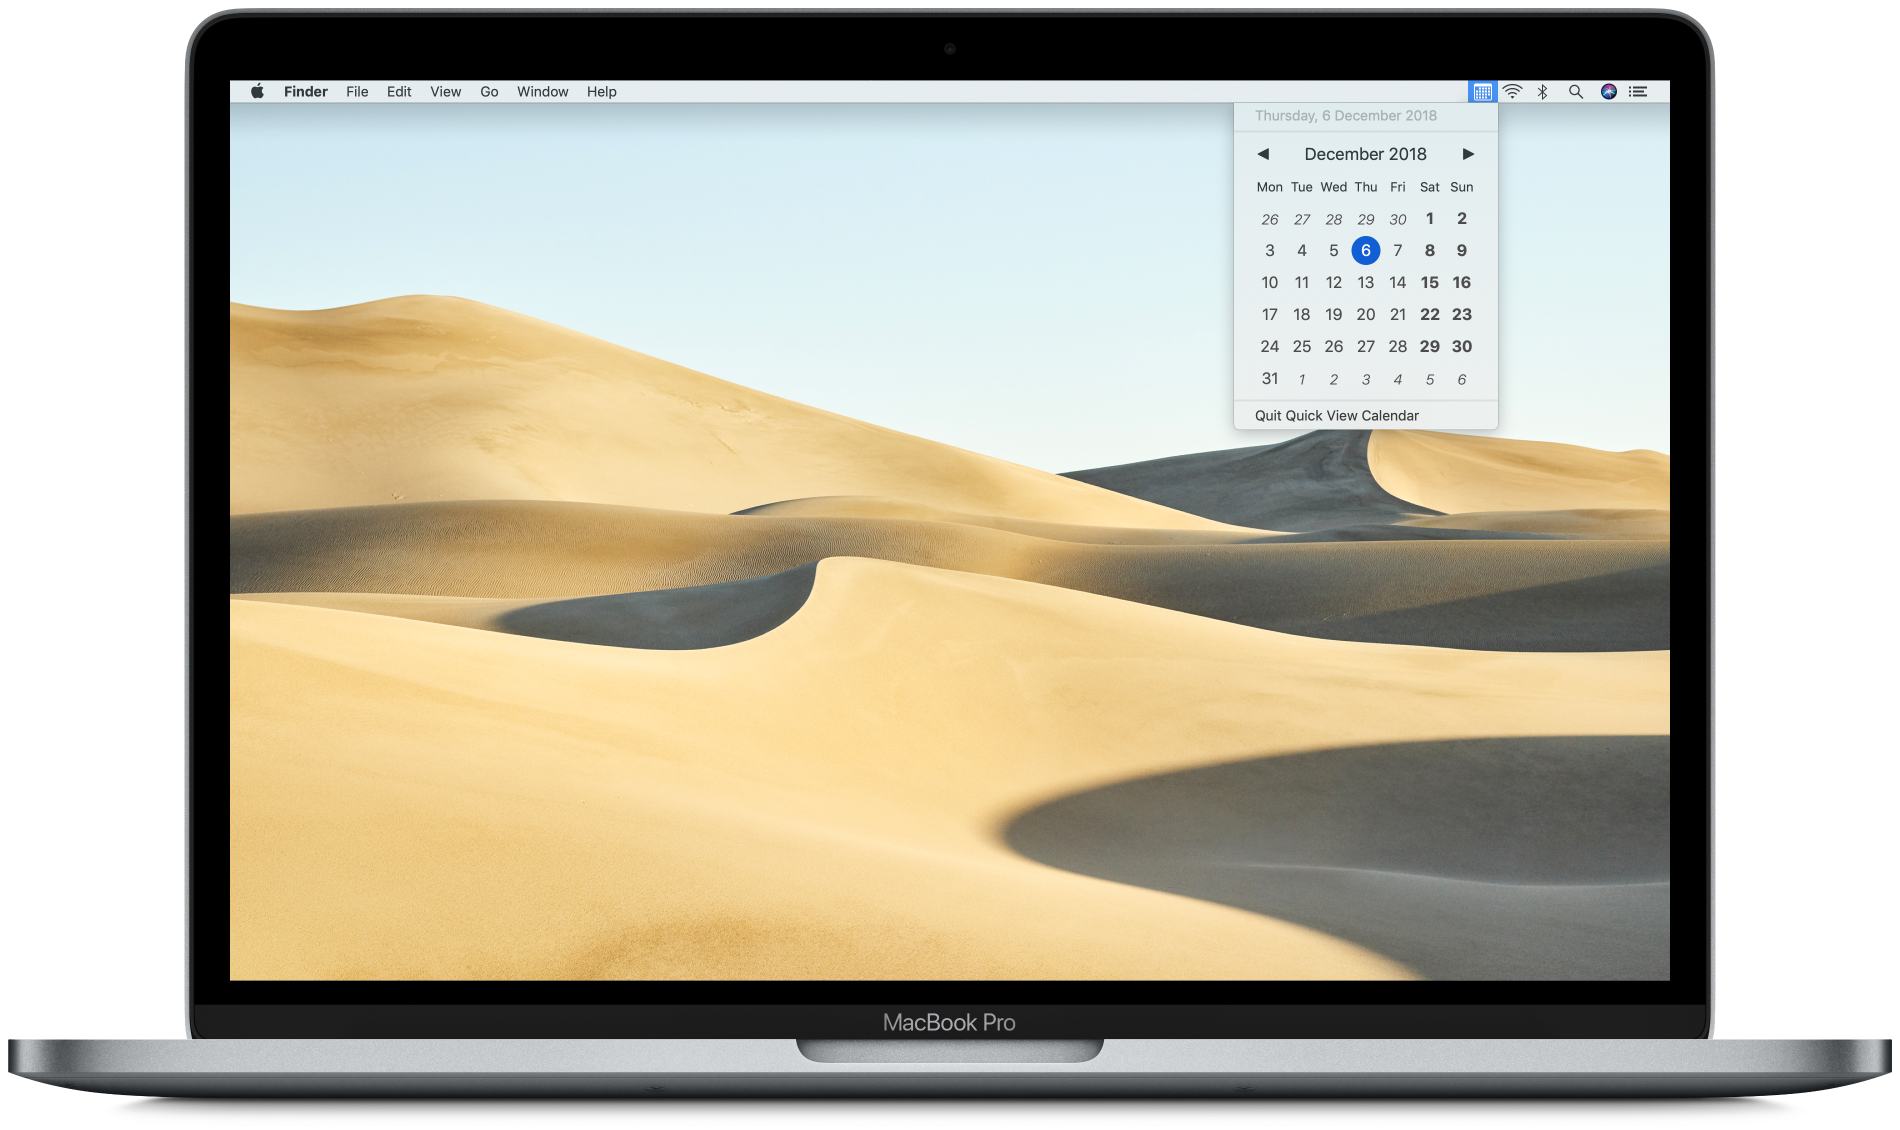 Quick View Calendar on a MacBook Pro